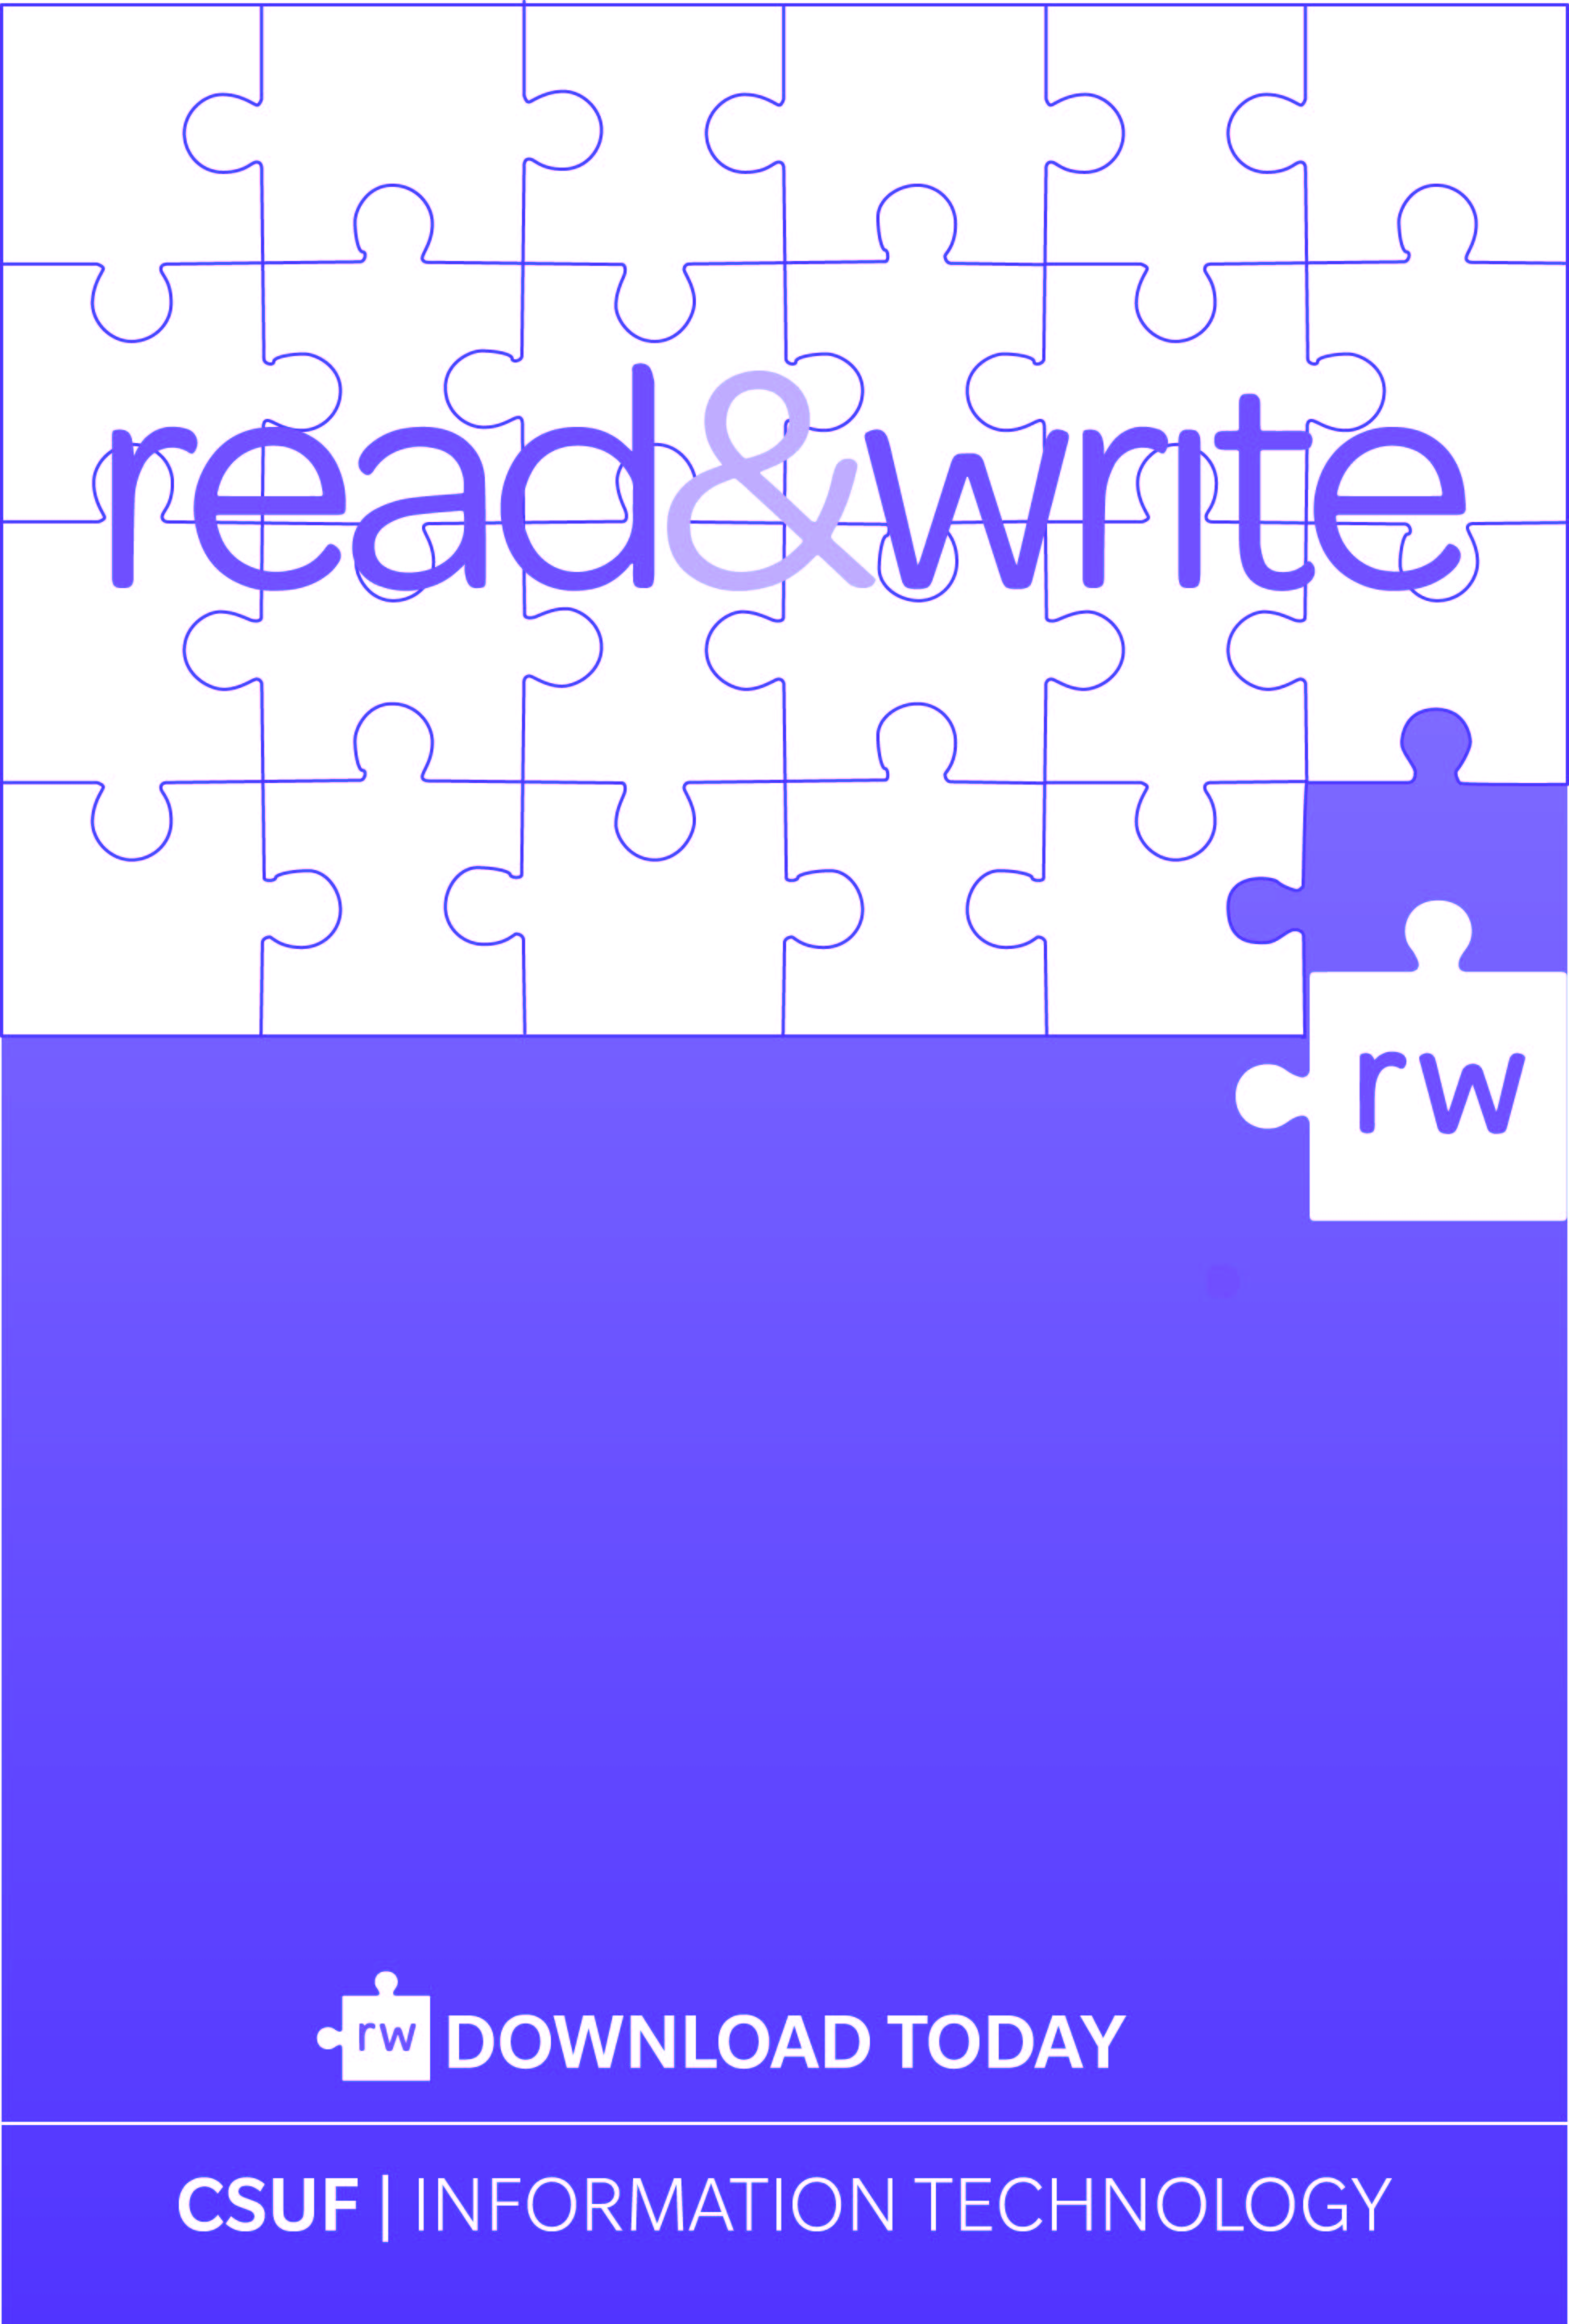 ReadWrite - Division of Information Technology | CSUF